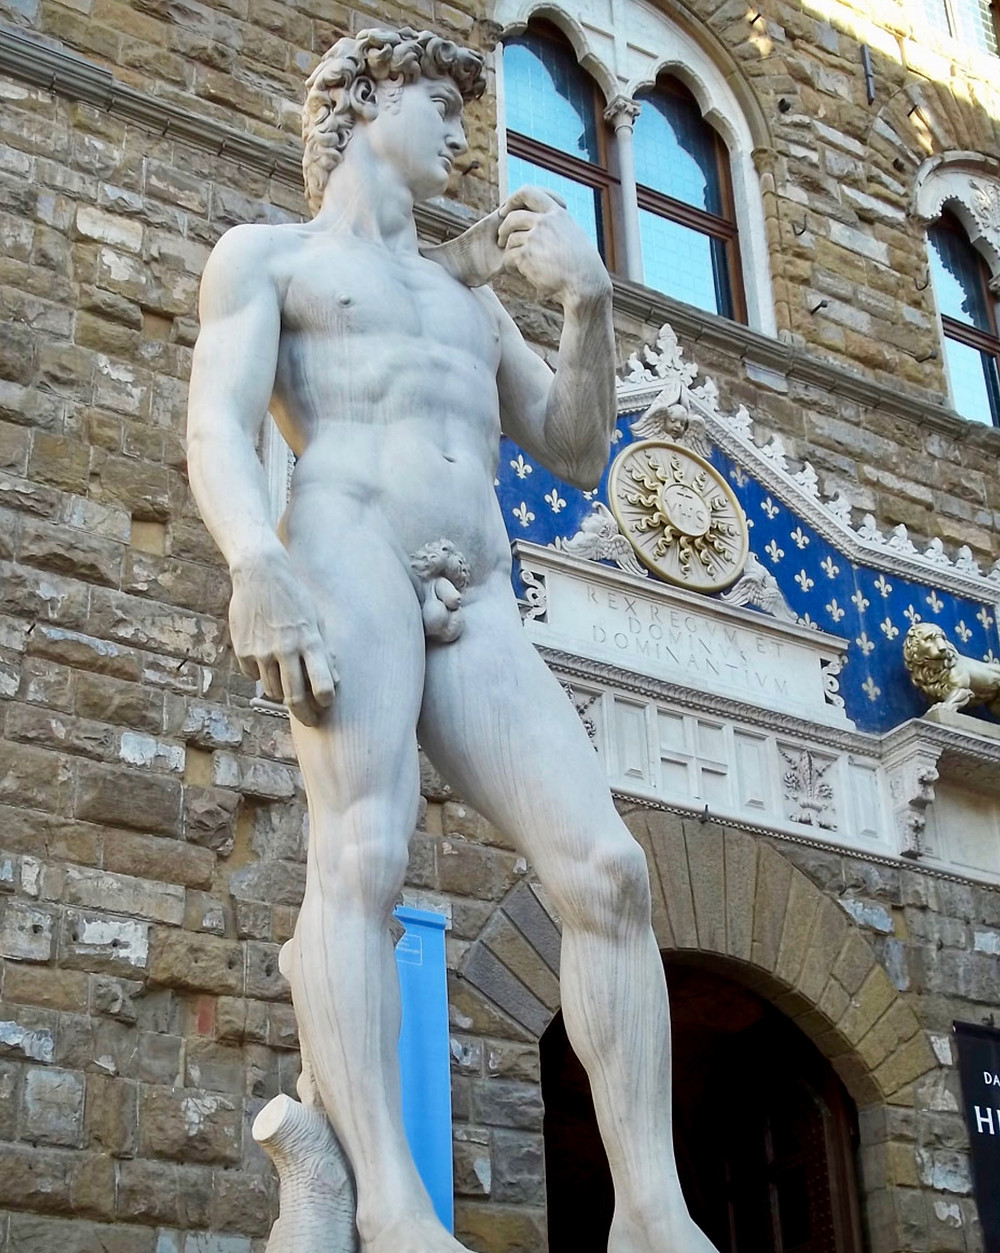 copy of Michelangelo's David at the entrance of Palazzo Vecchio